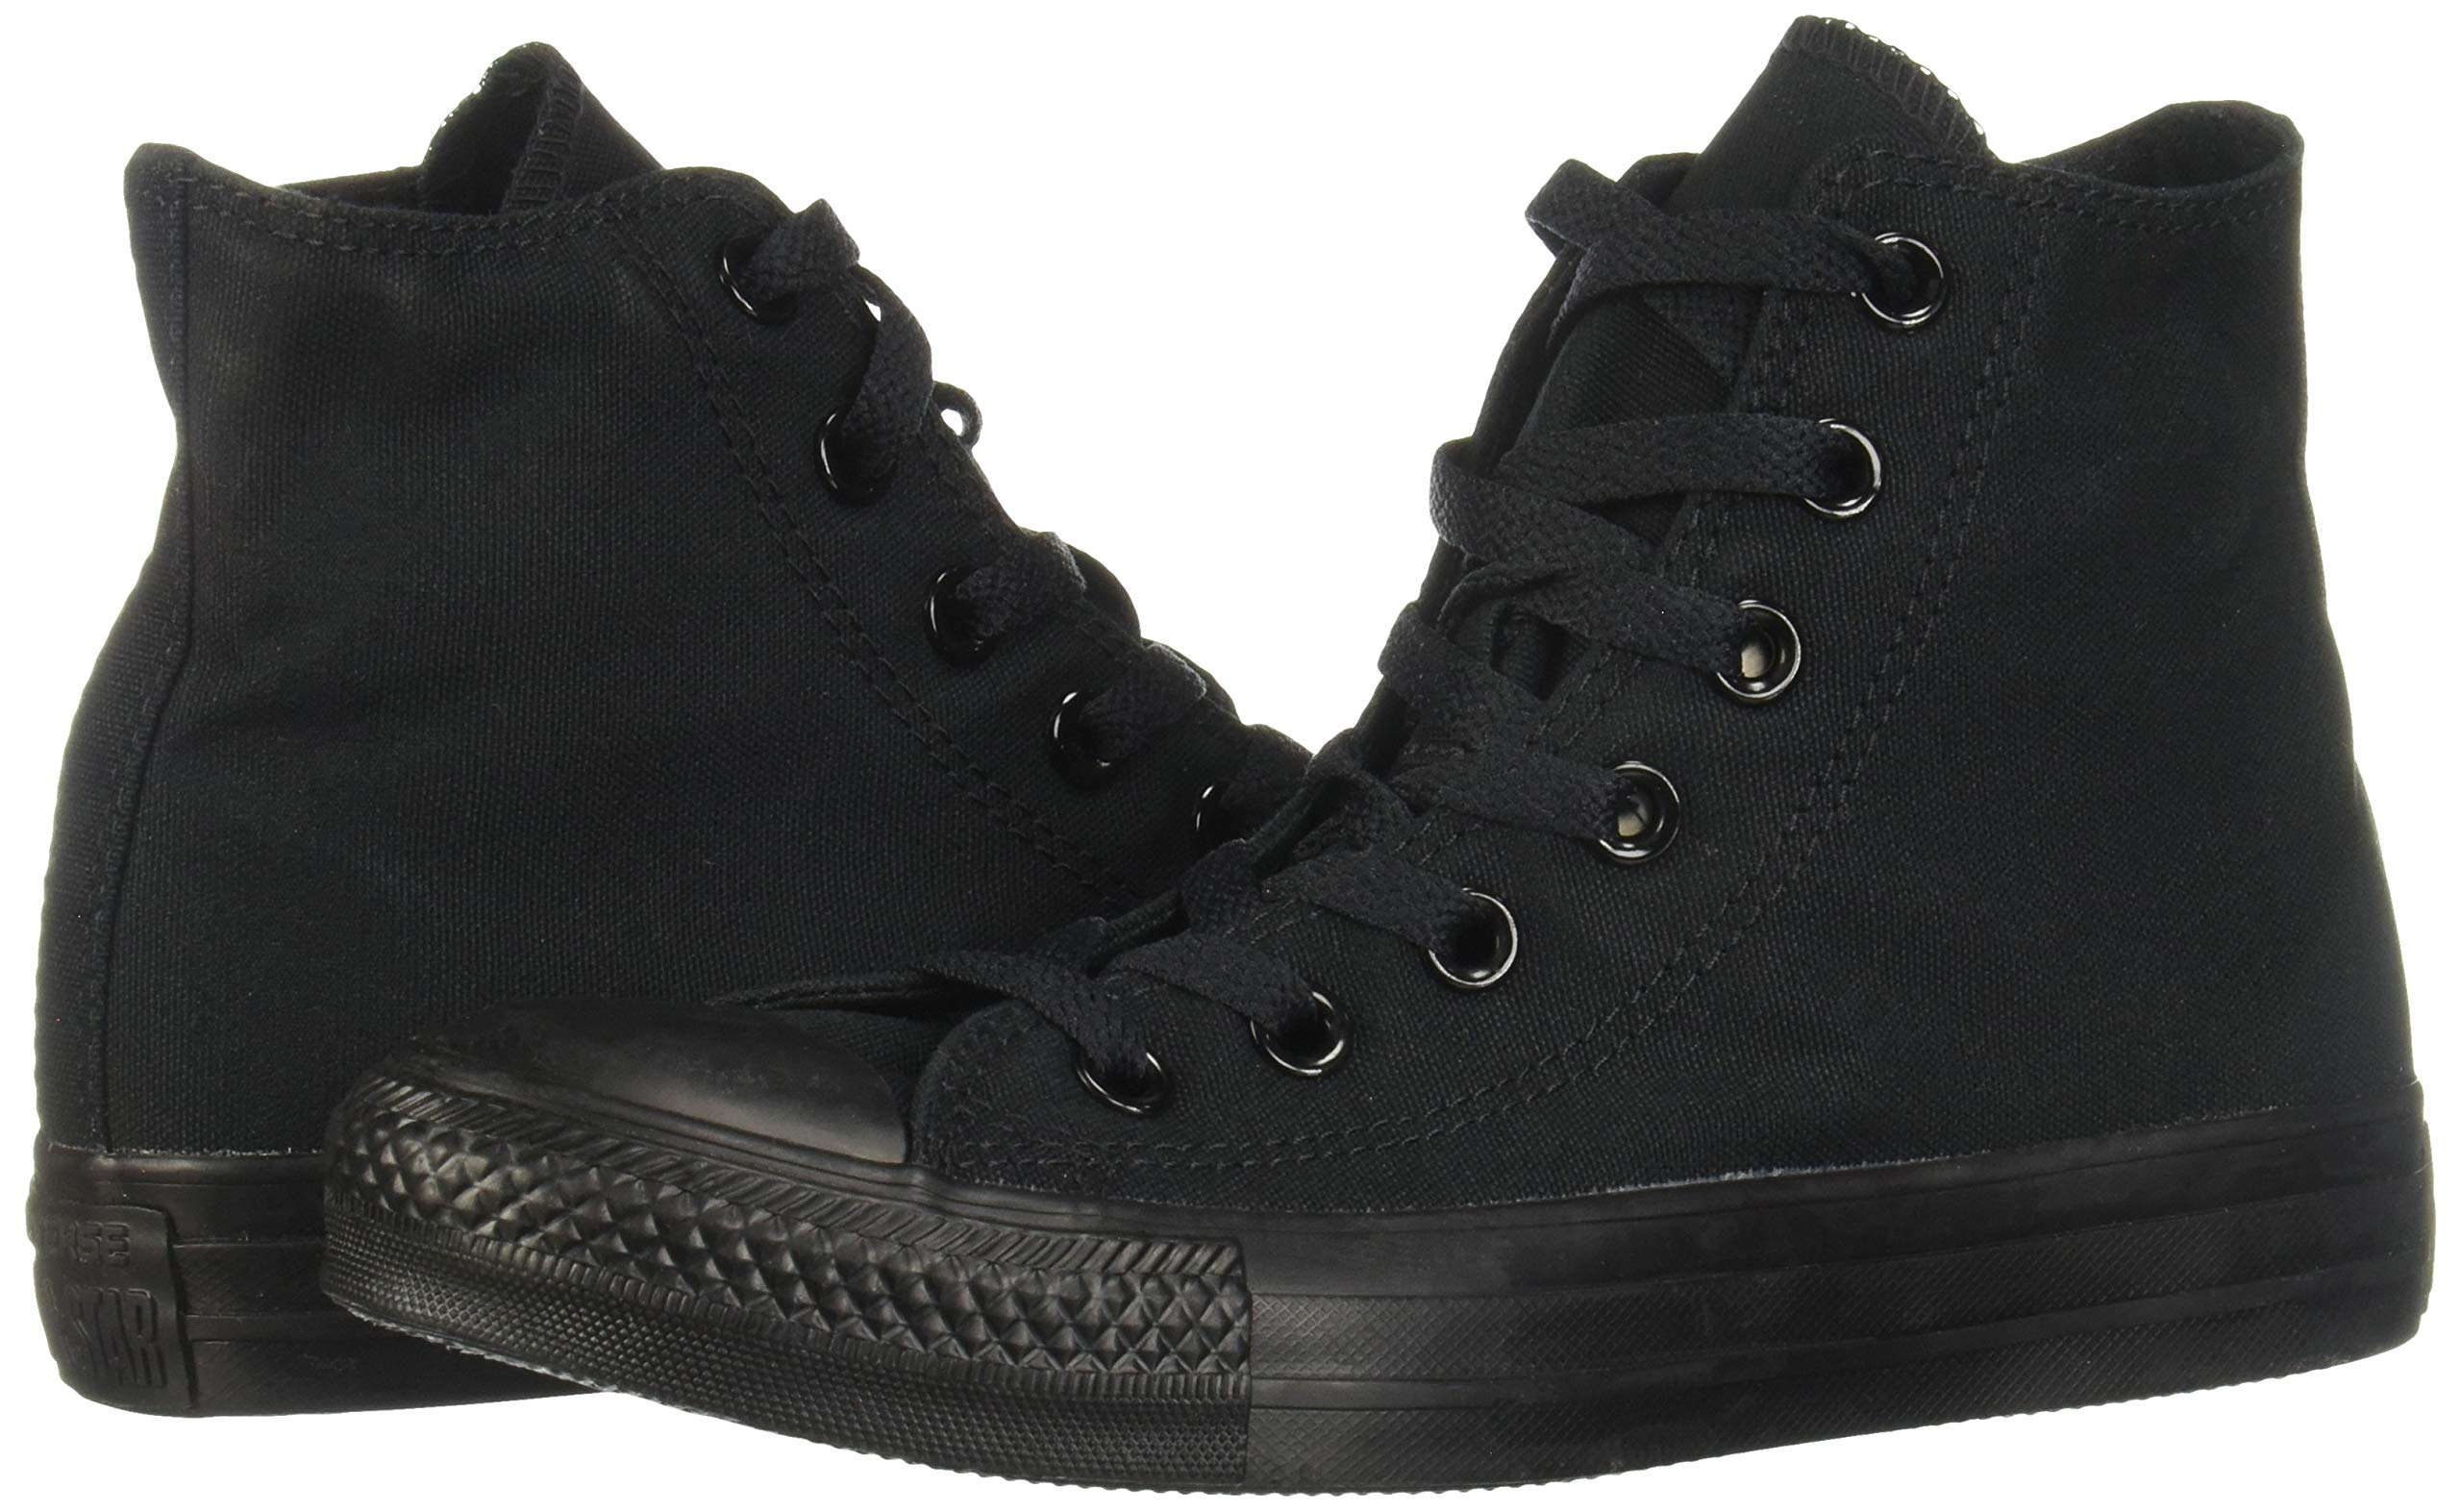 Converse Chuck Taylor All Star High Top Black/Black 9 D(M) US by Converse (Image #6)